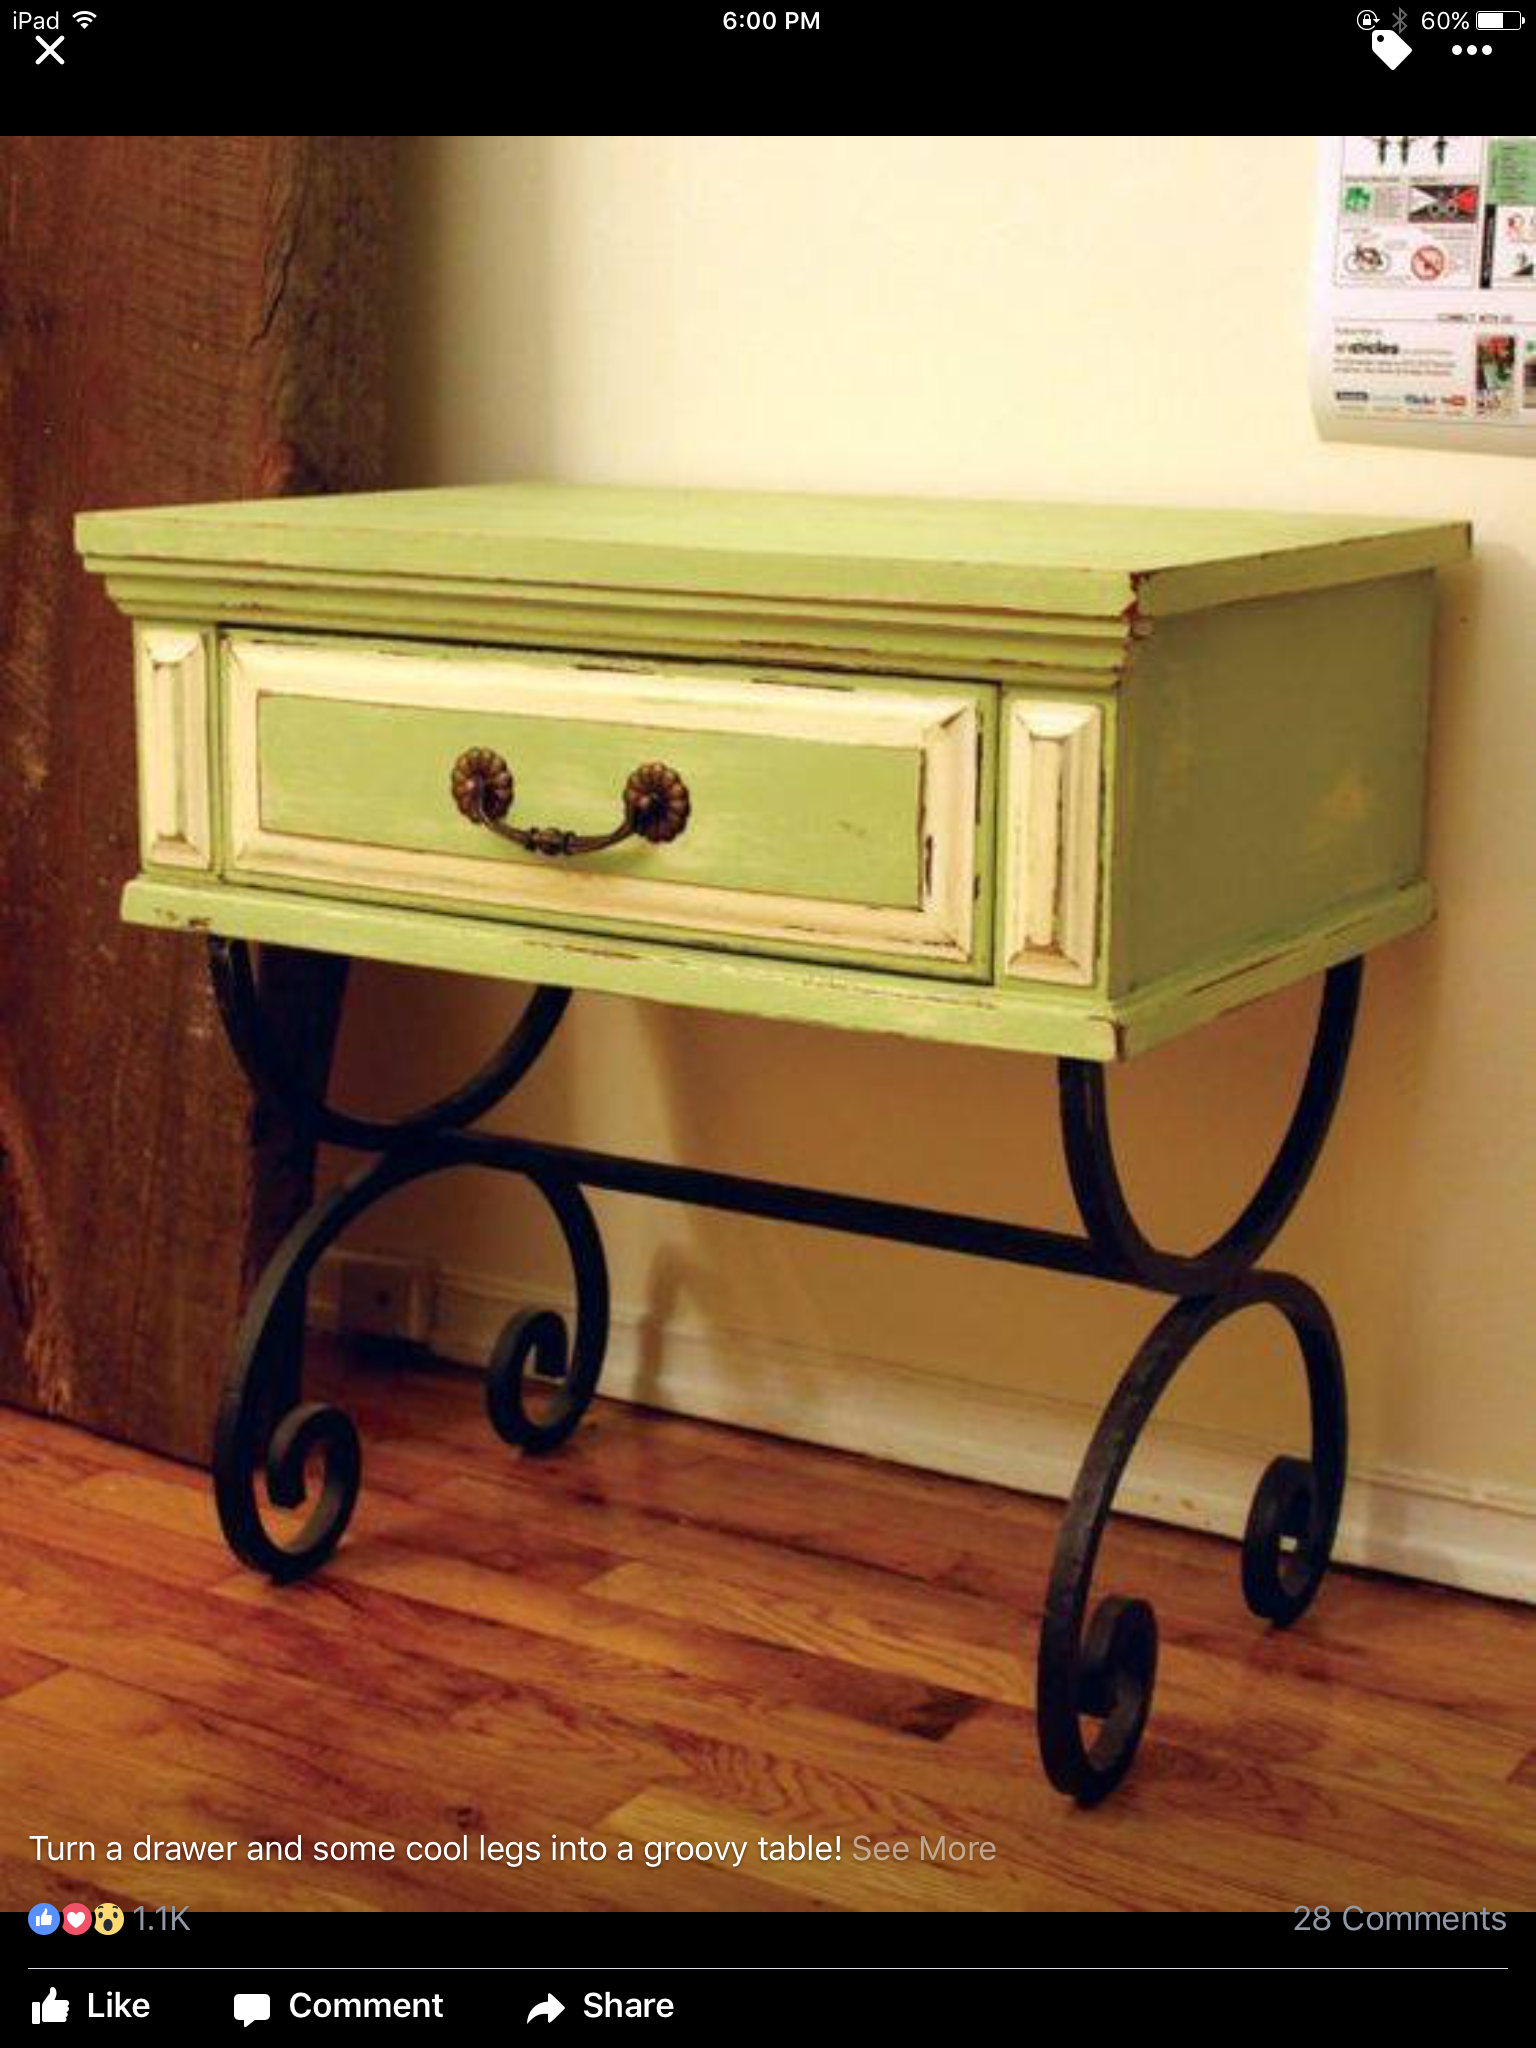 Pin by jakagr on Decor Recycled furniture, Repurposed